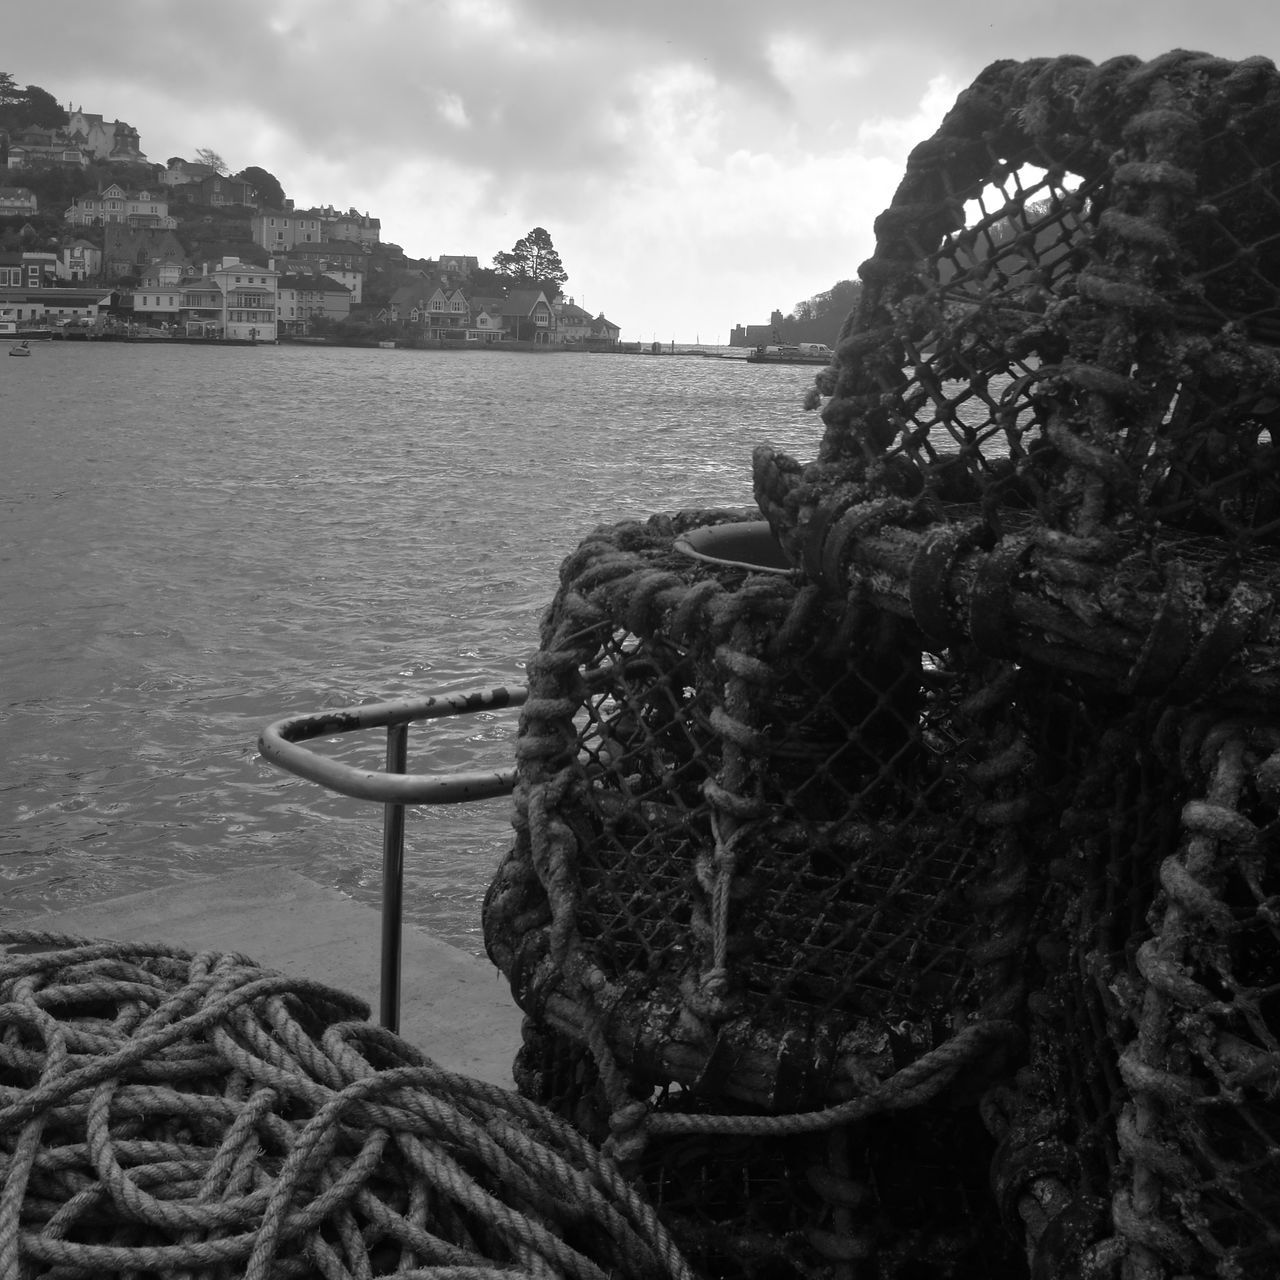 rope, sea, fishing net, water, strength, fishing equipment, fishing industry, no people, outdoors, harbor, tied up, sky, nautical vessel, tied knot, day, buoy, chain, moored, nature, fishing tackle, close-up